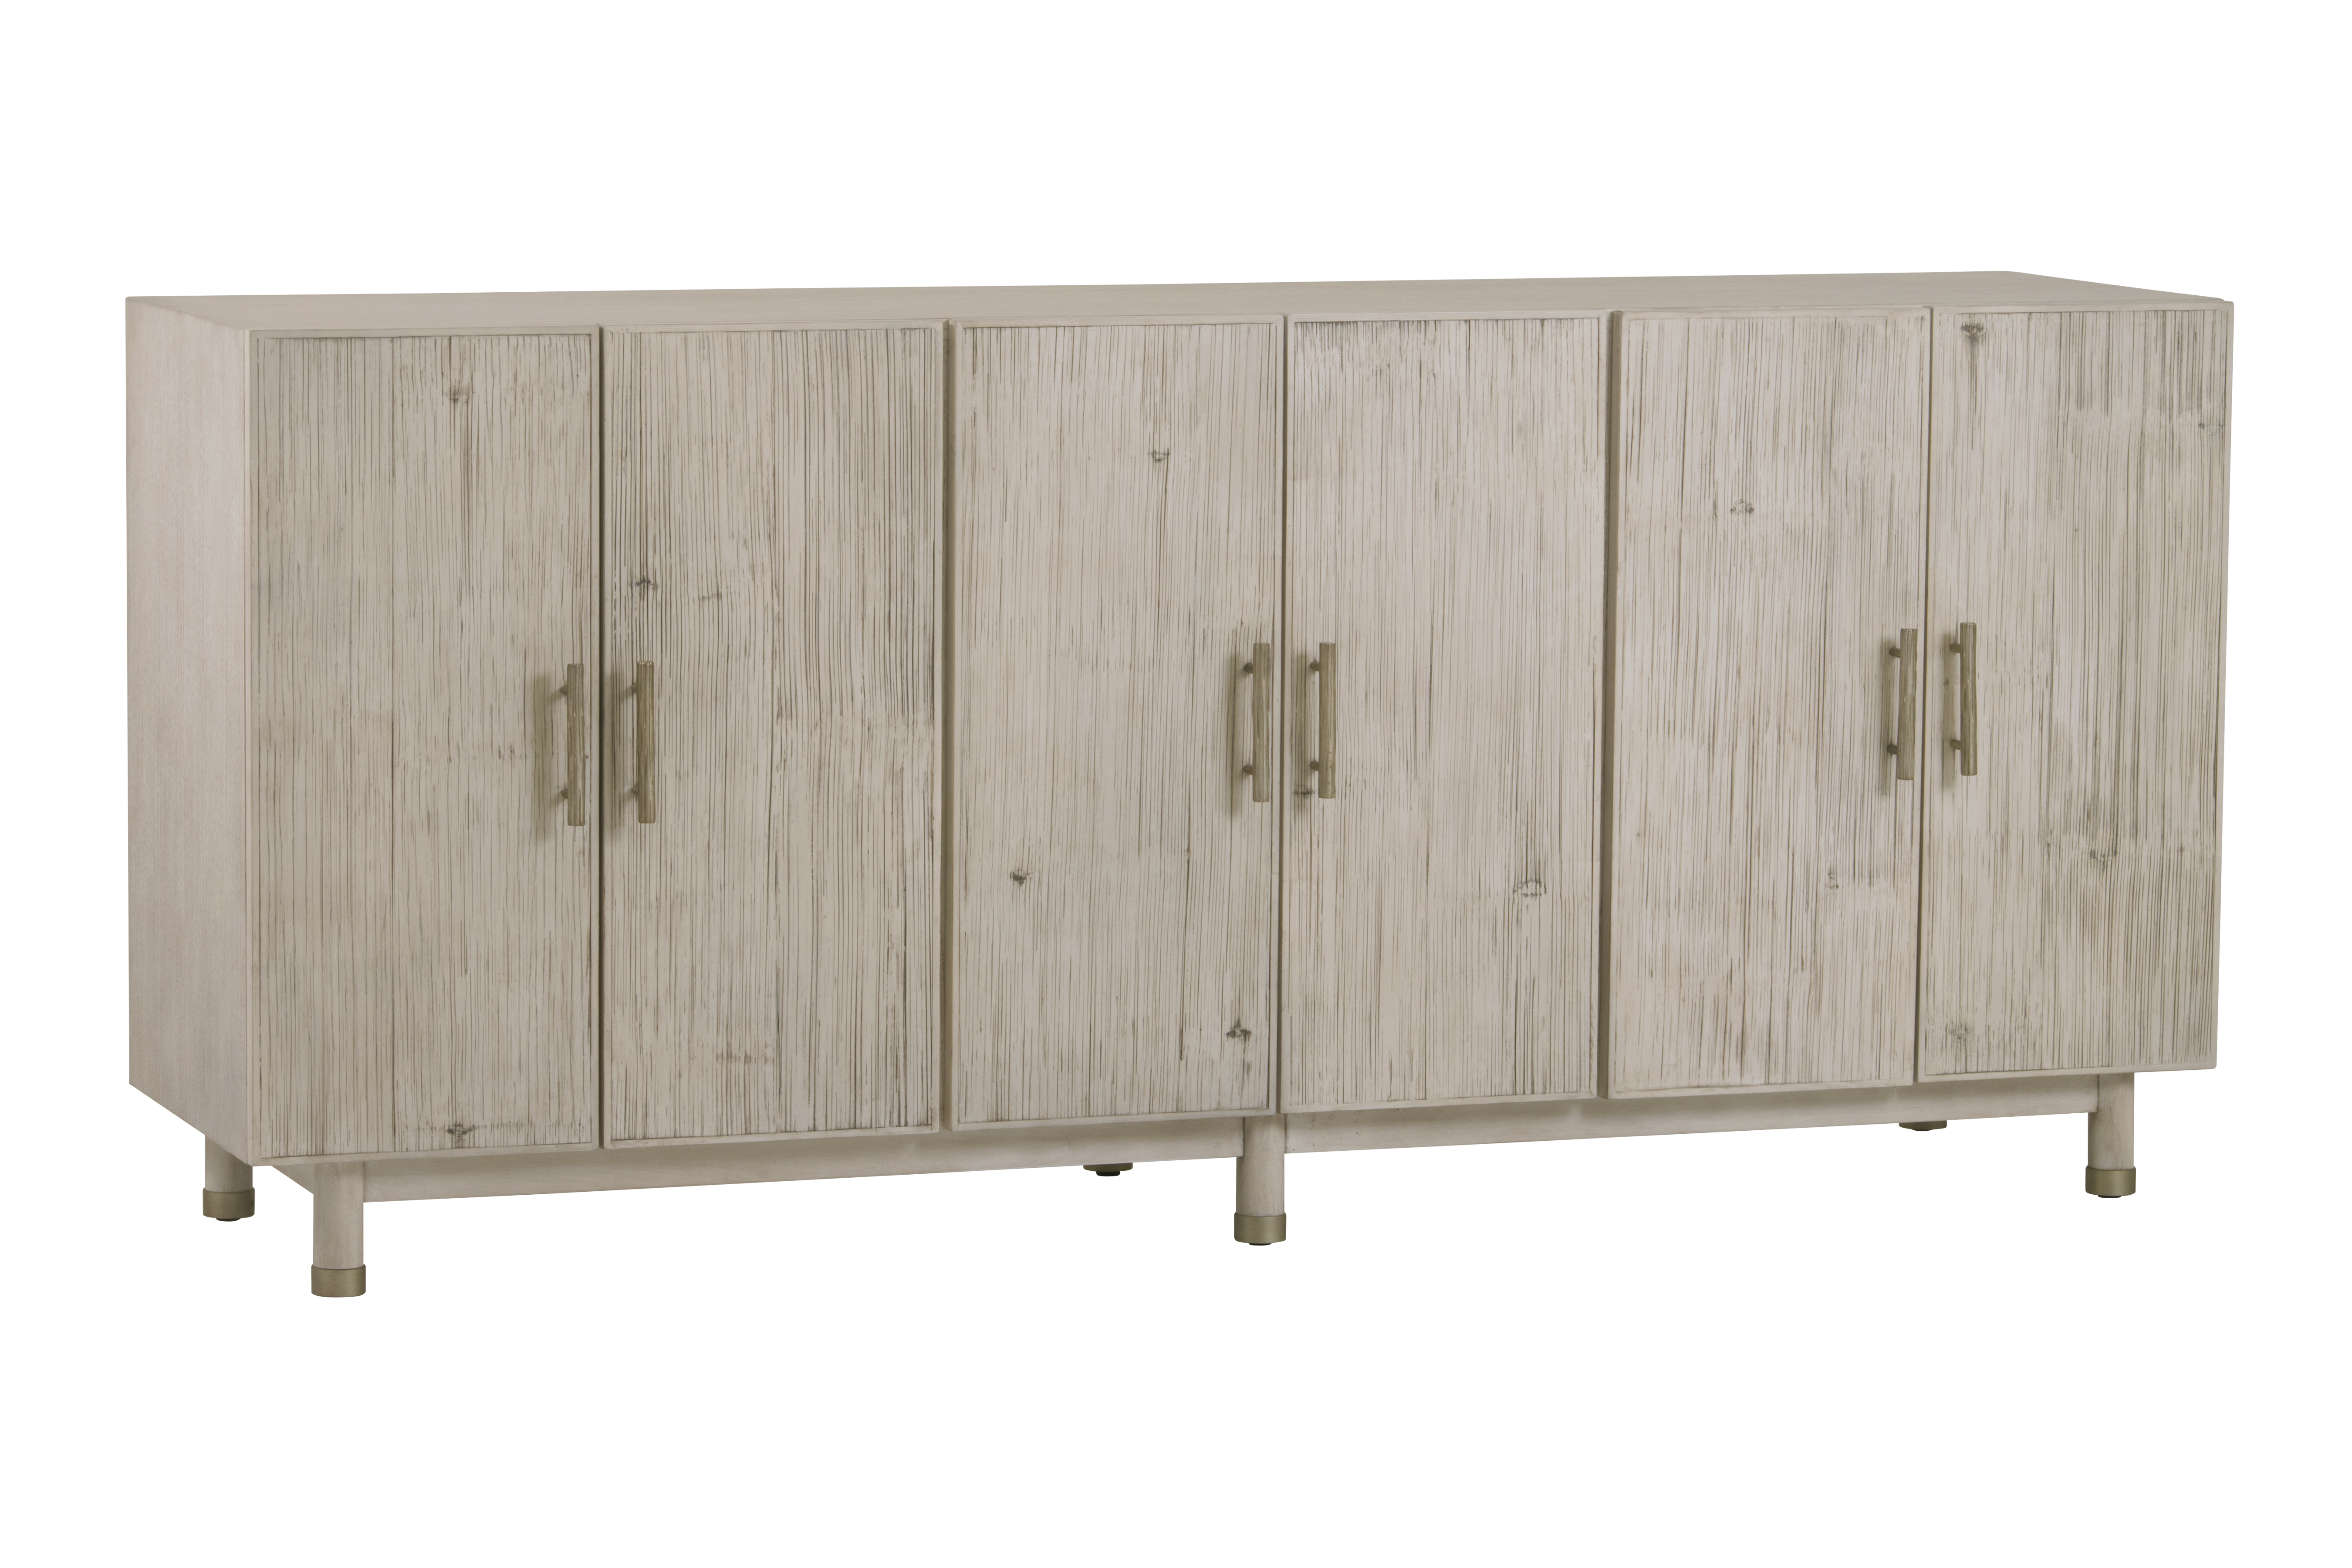 Curate Home Bamboo credenza